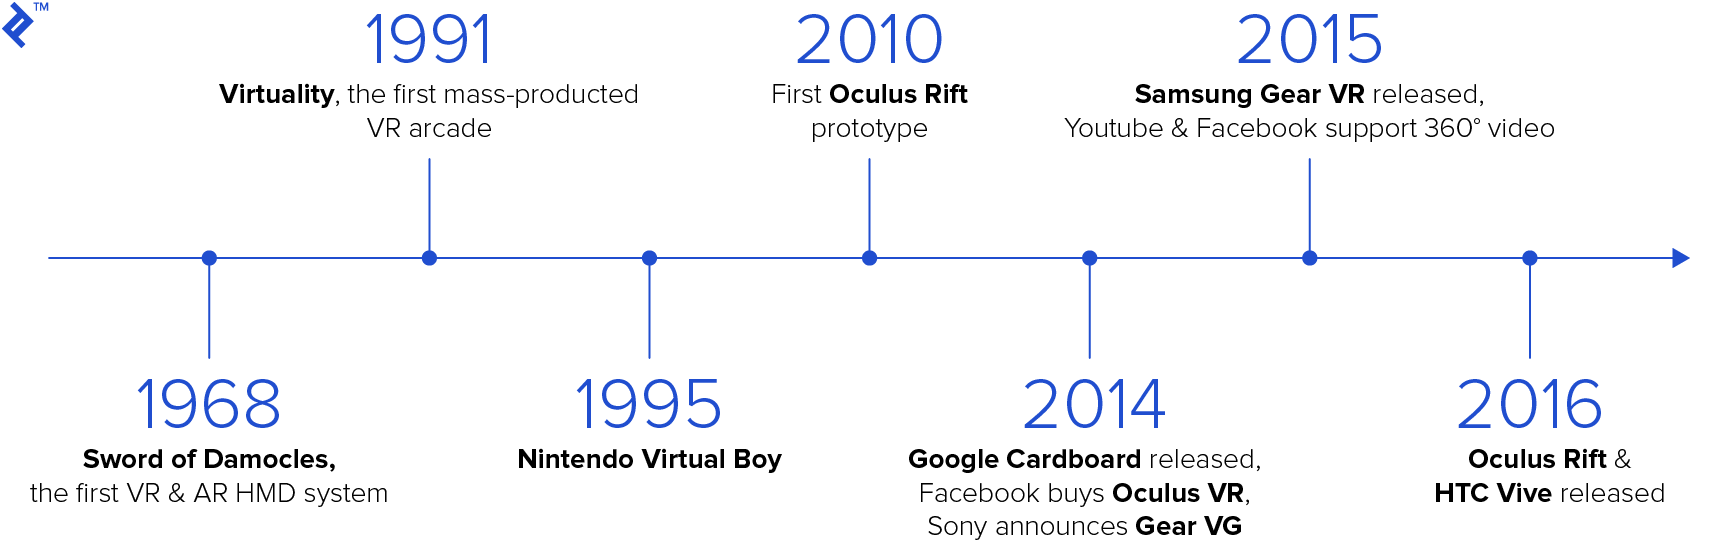 VR timeline showing progress through the history of VR.